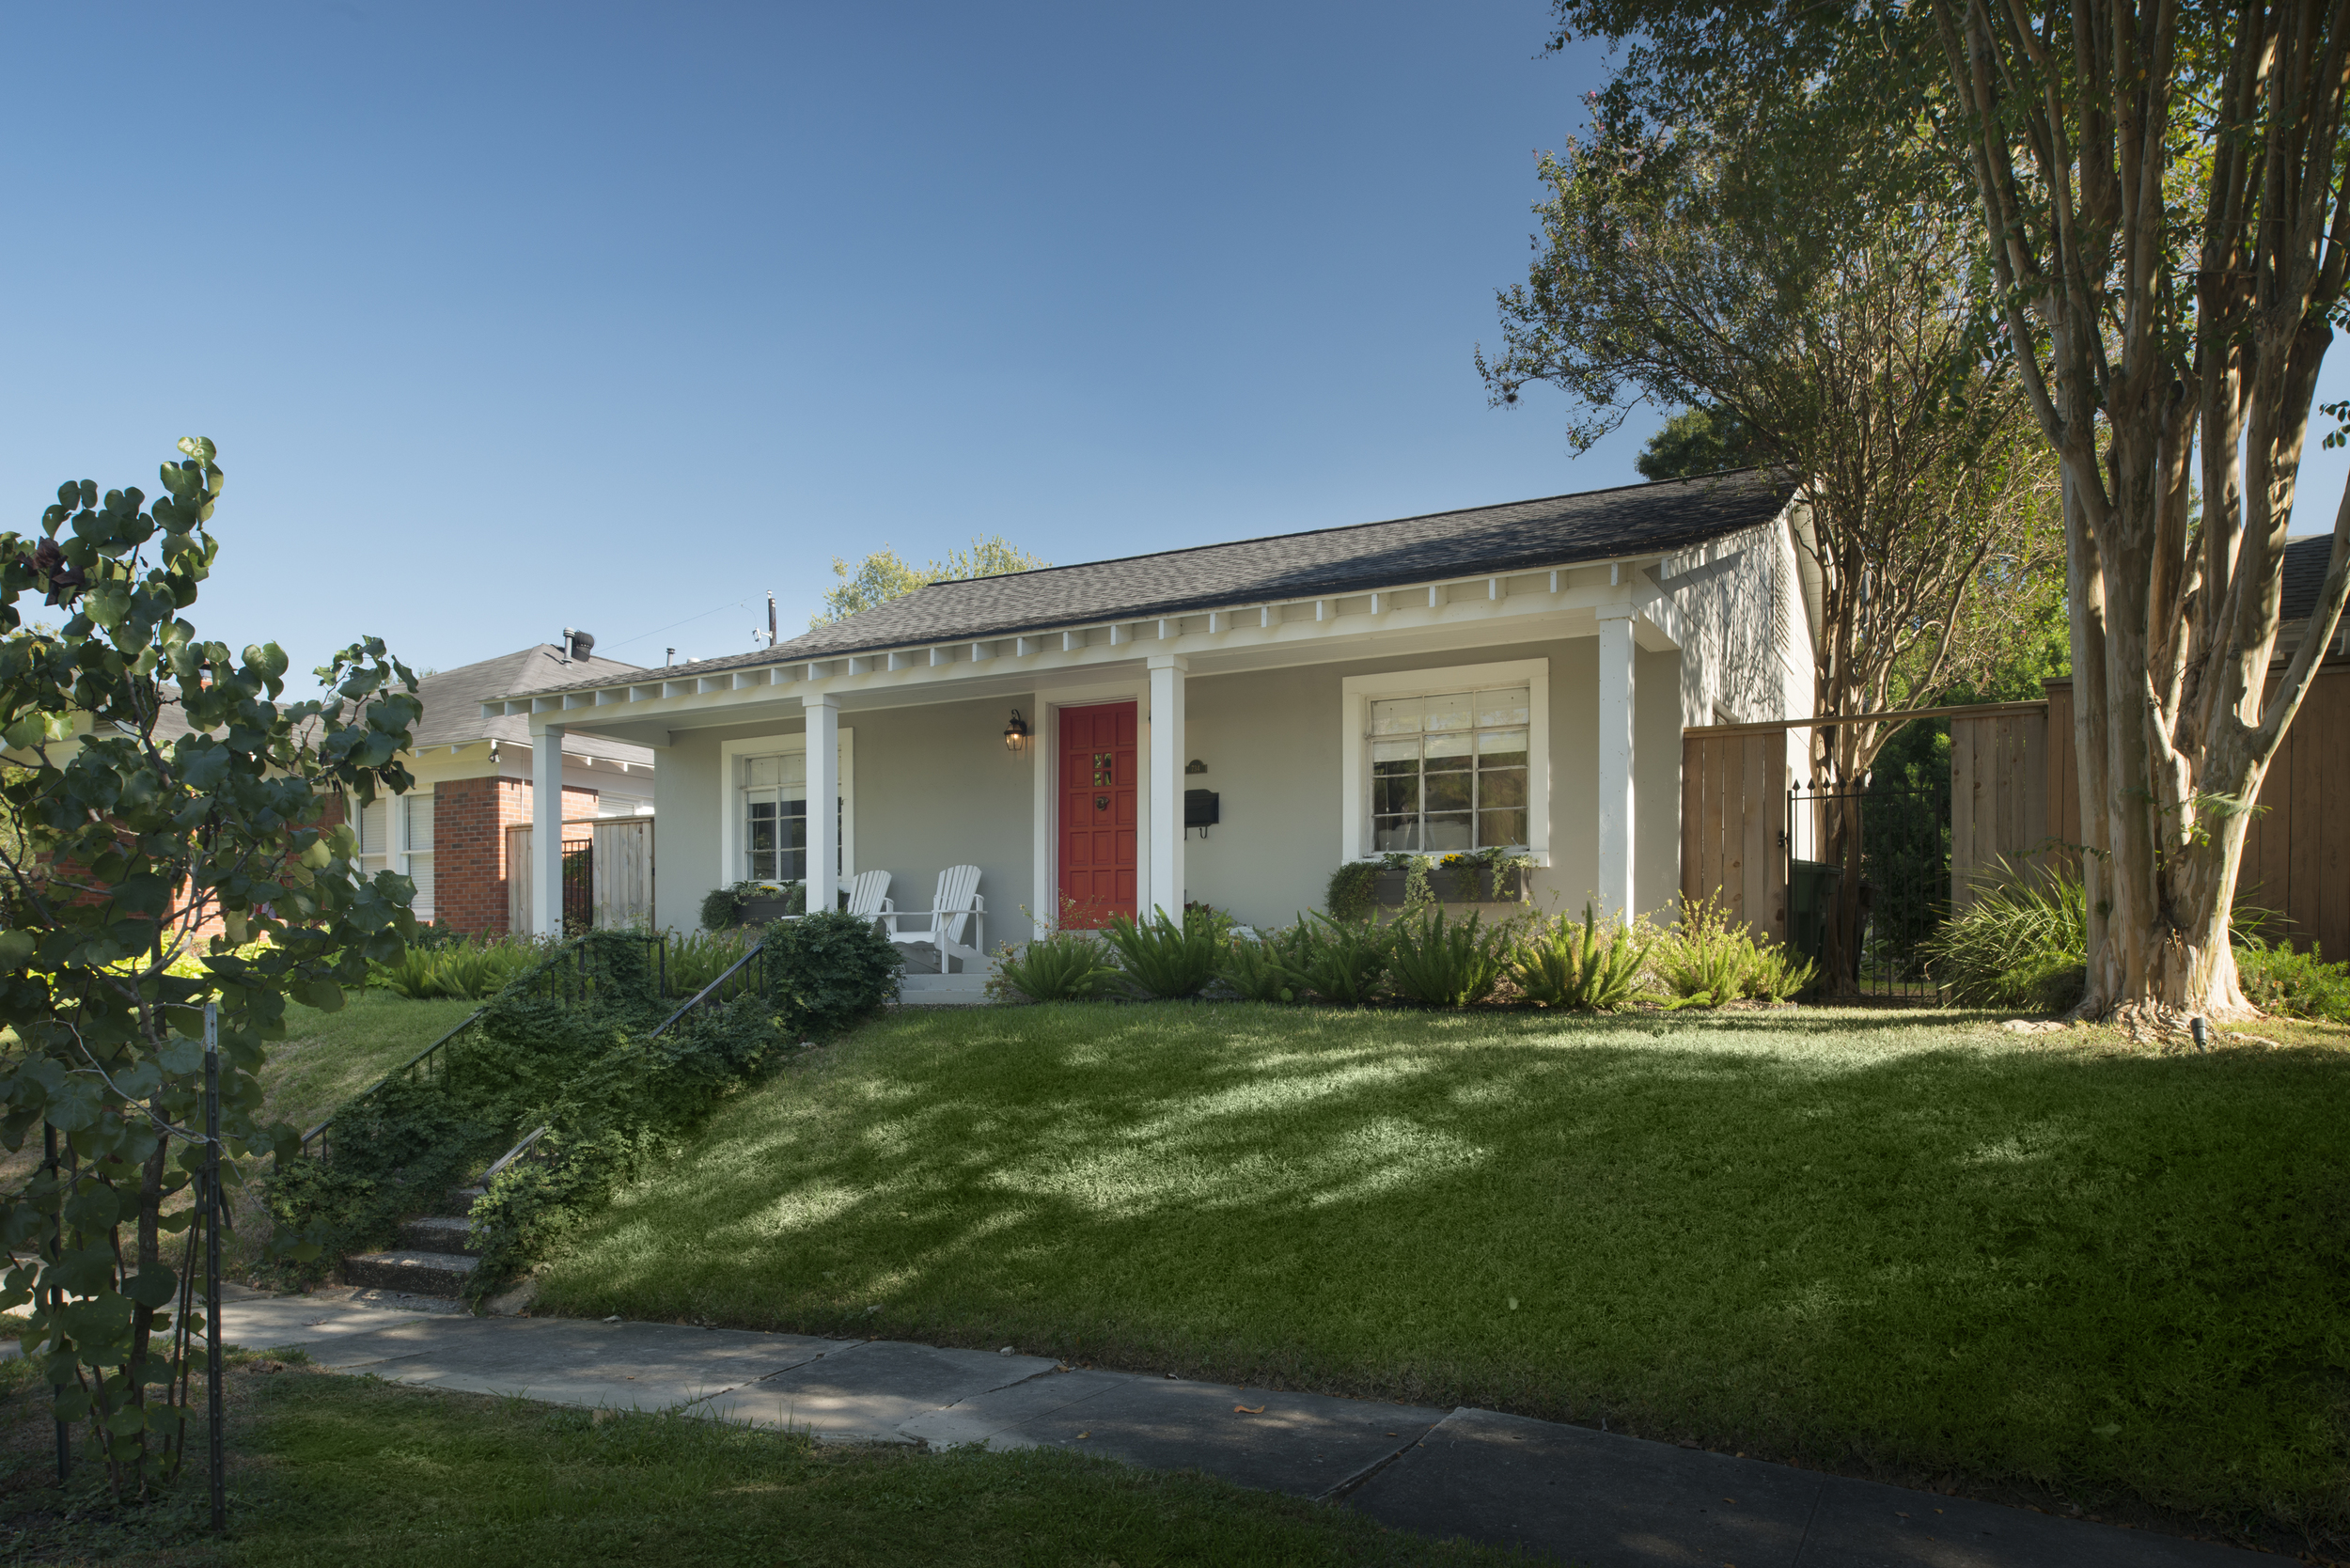 734 Usener: 2-1 bungalow updated in 2014 with pre-existing back porch addition converted to office and half bath.